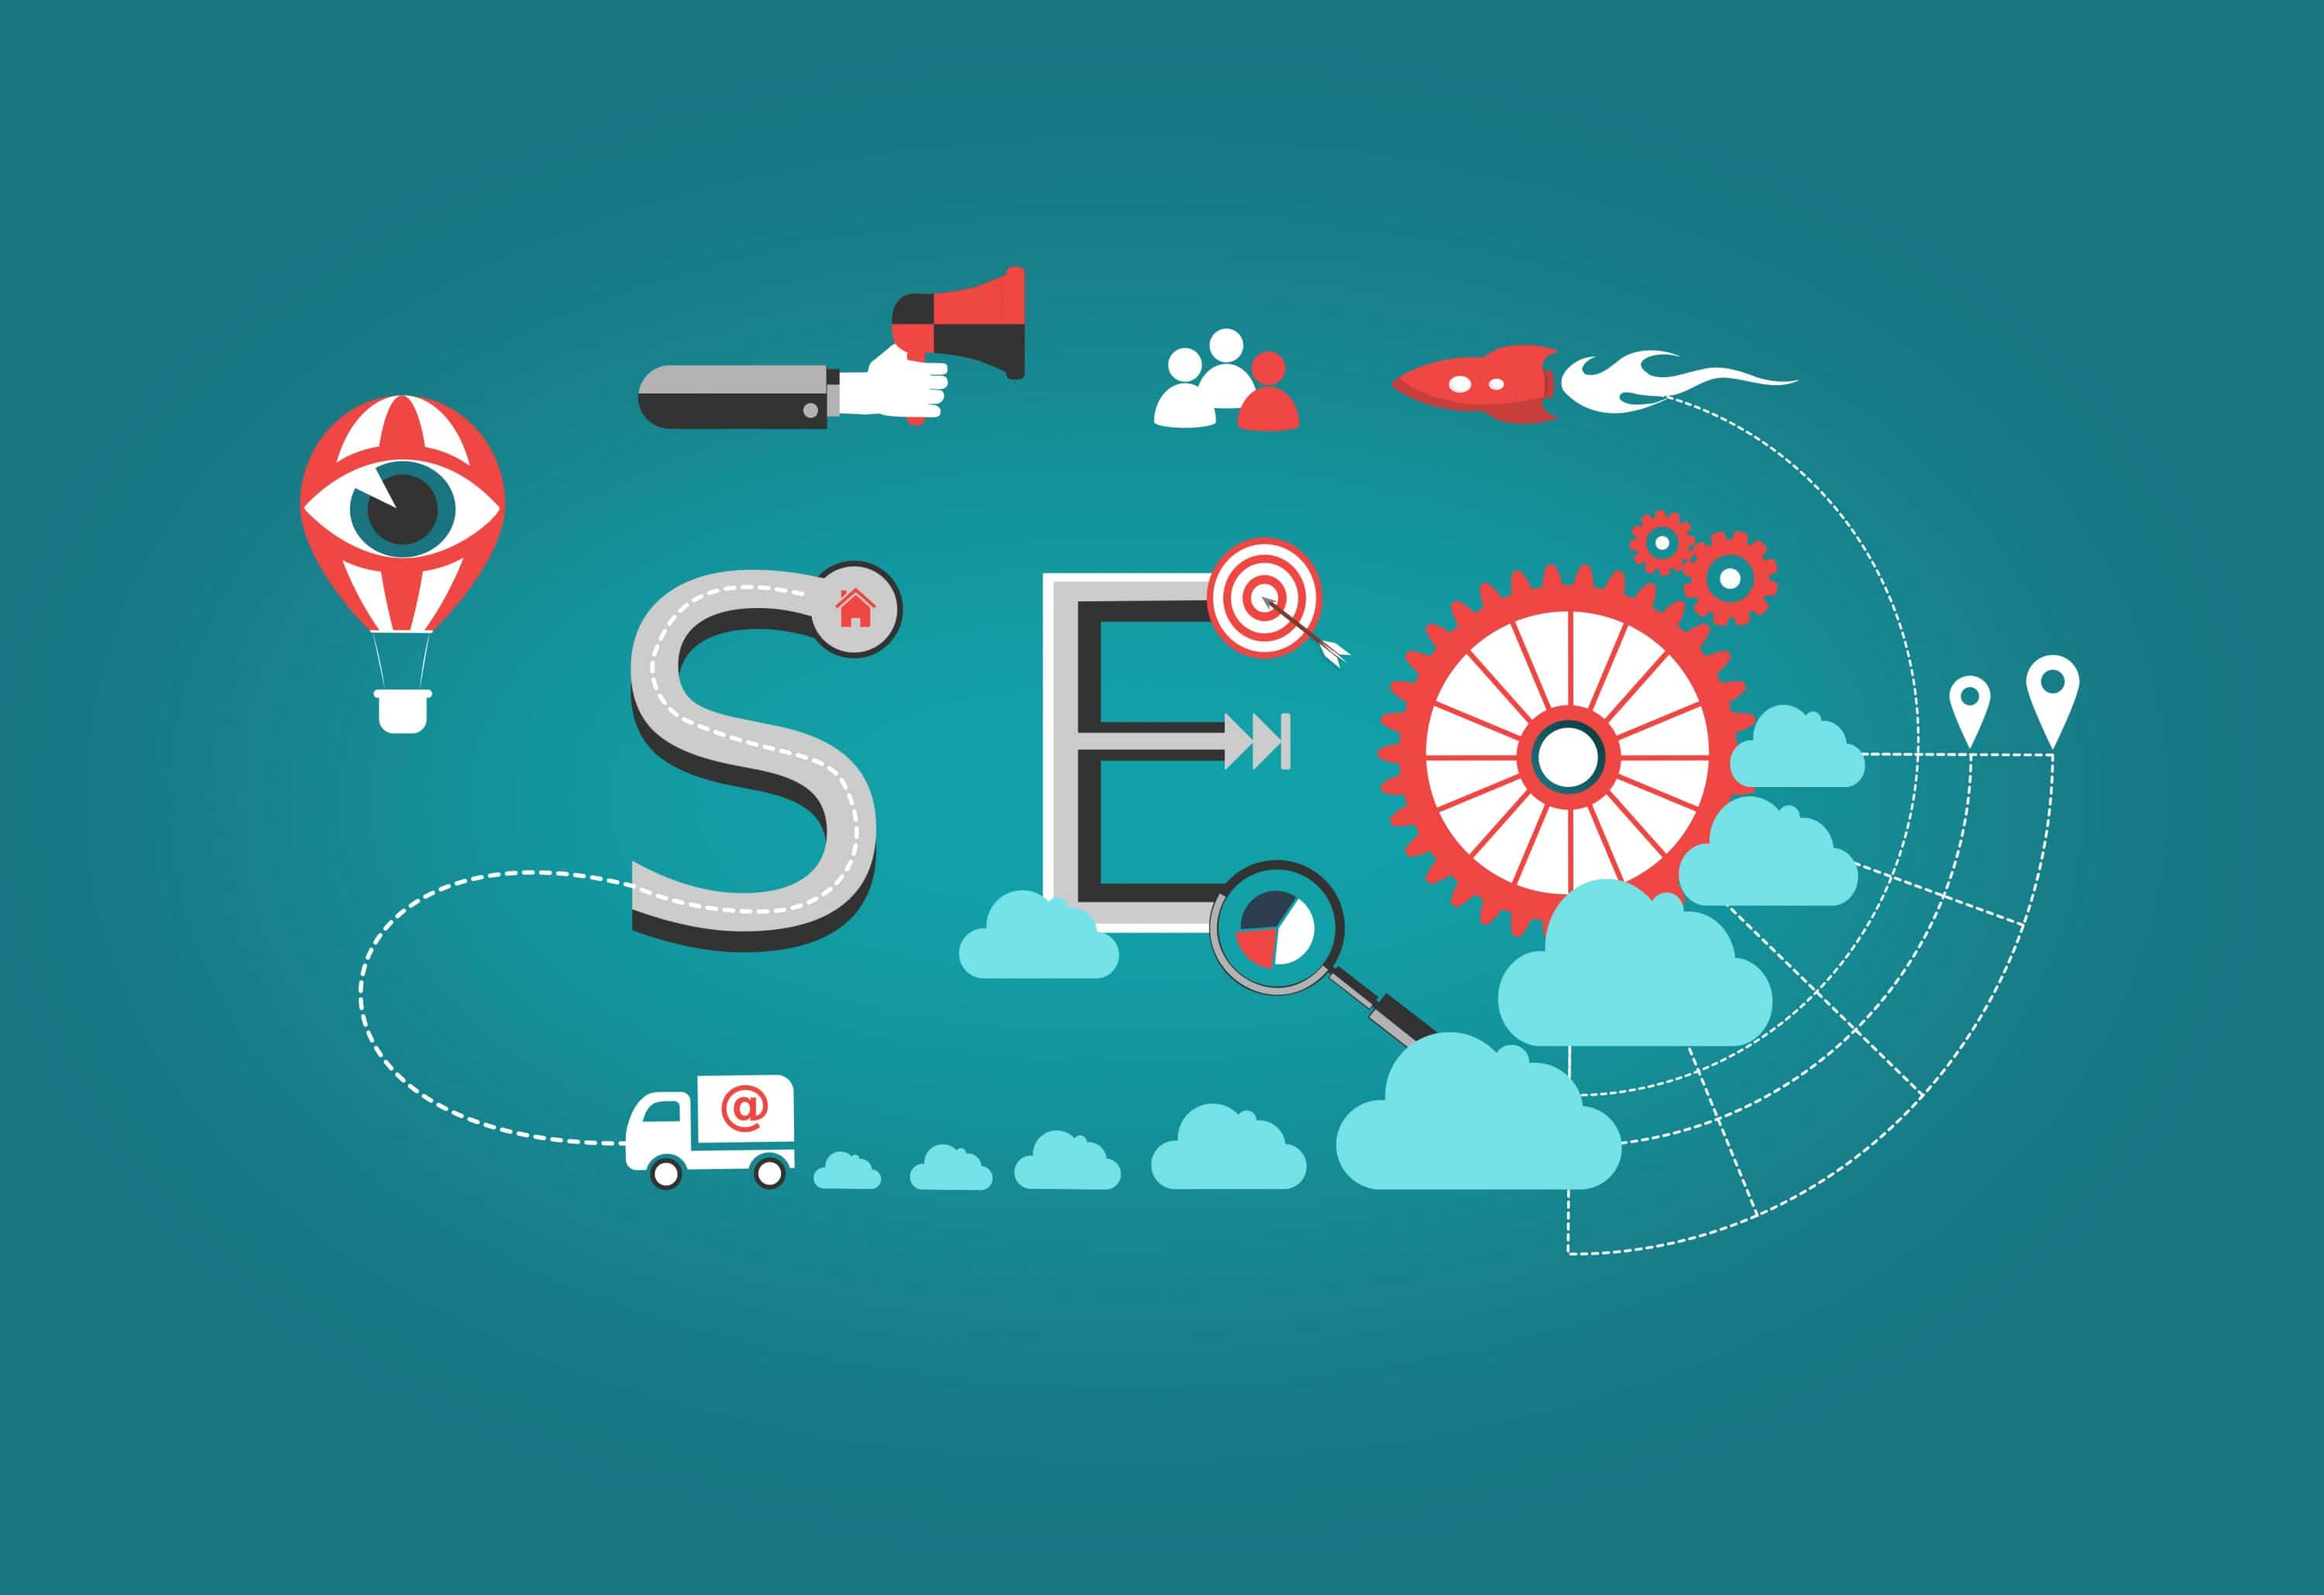 seo image Search-Engine-Optimization-Optimisation-pour-moteurs-de-recherche